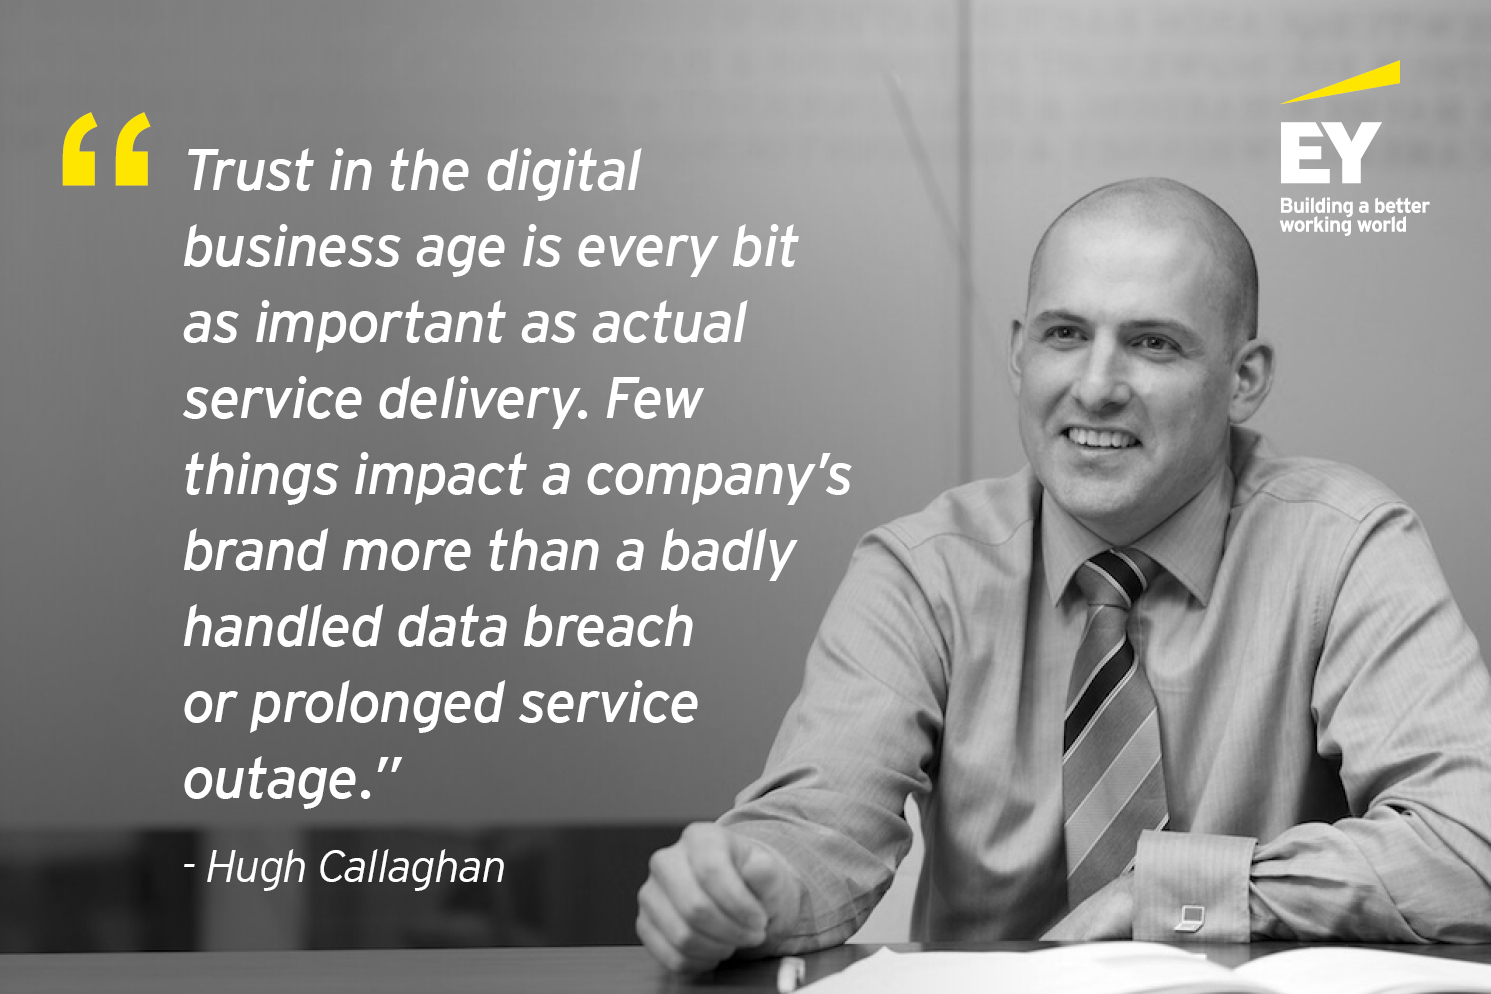 Cybersecurity quote from EY Cyber Risk Leader